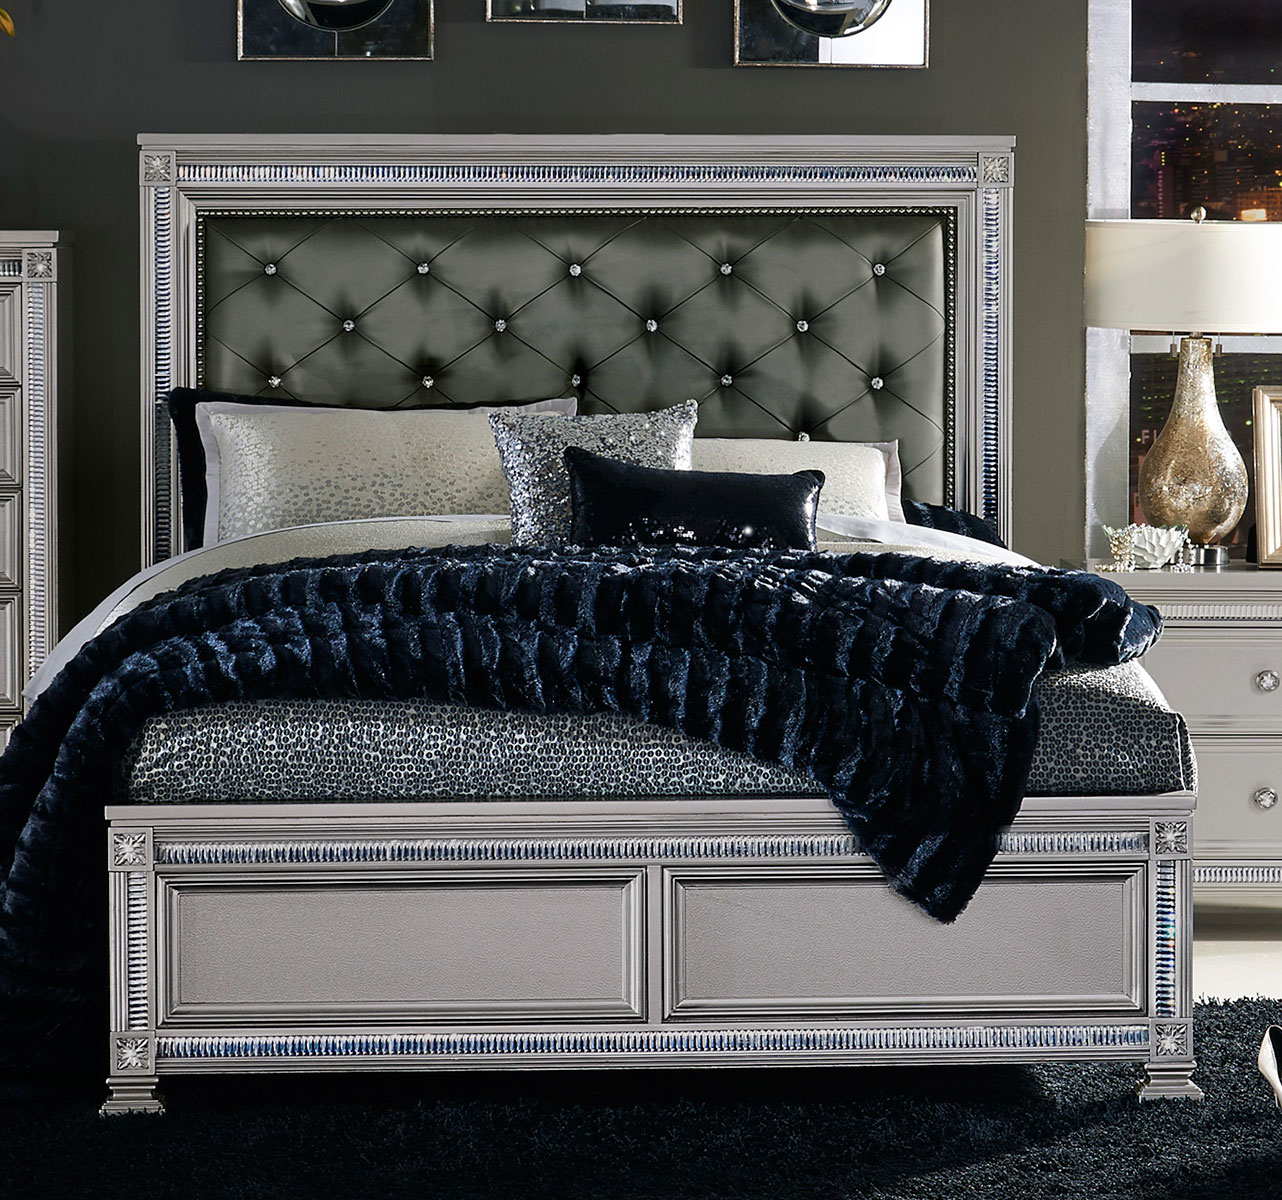 Homelegance Bevelle Button Tufted Upholstered Bed - Silver